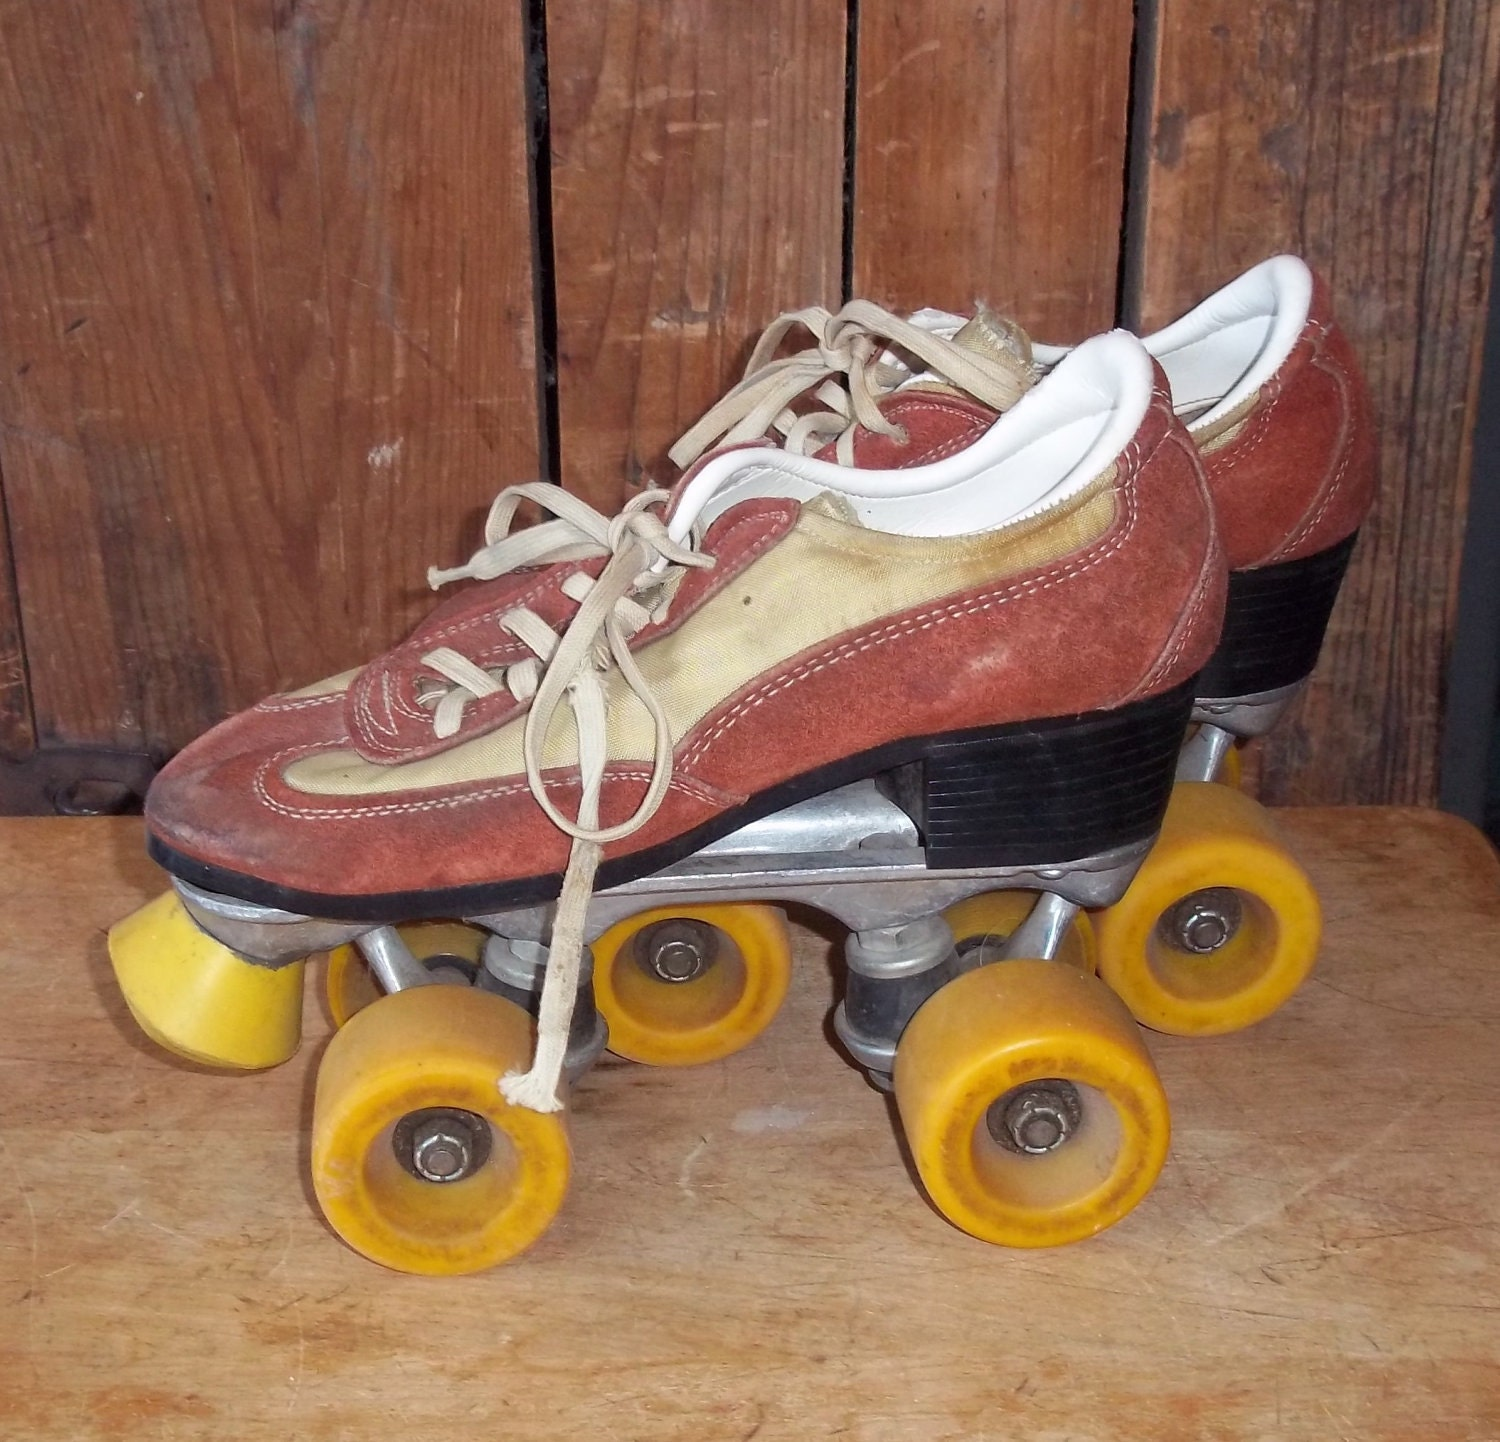 Sneaker Roller Skates 70s Vintage by Charie88 on Etsy